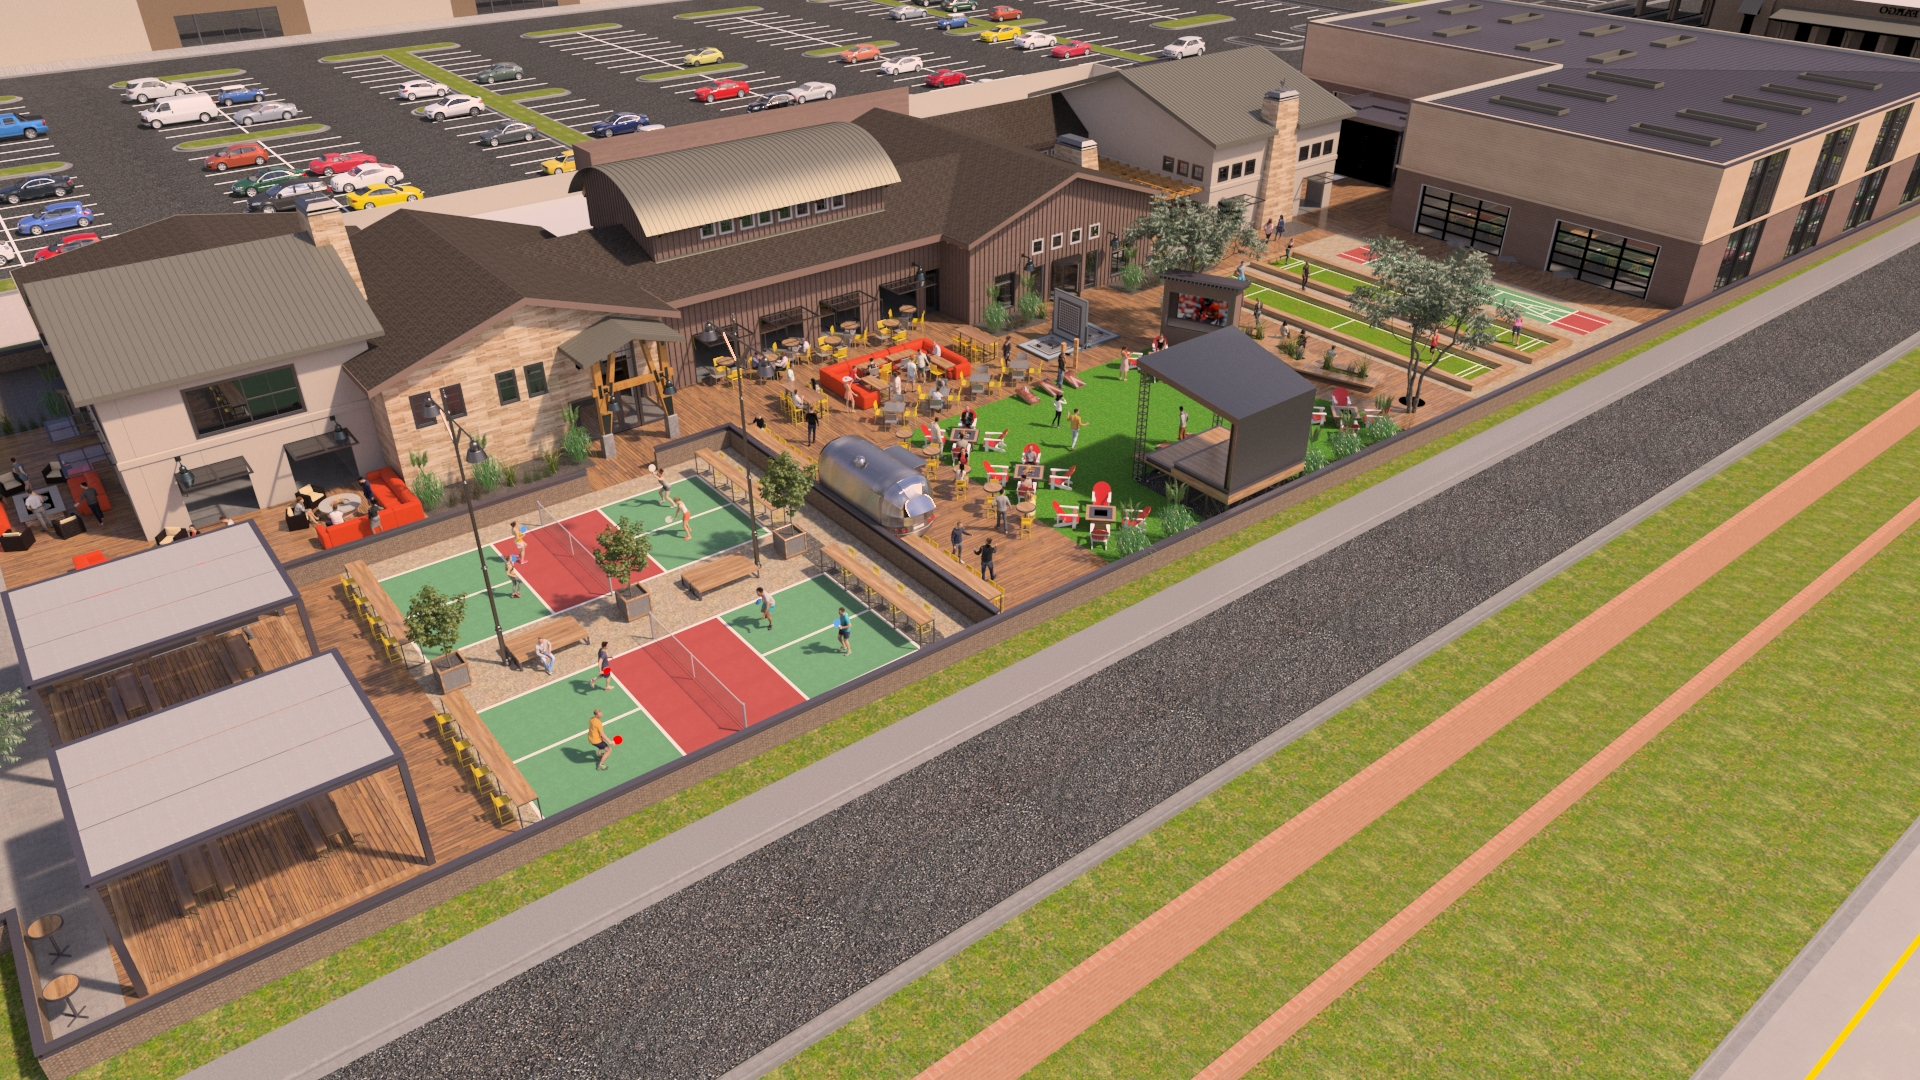 Rendering provided by Altitude Hospitality Group shows the open-air dining and entertainment complex that will replace the current Till restaurant location in Briargate.